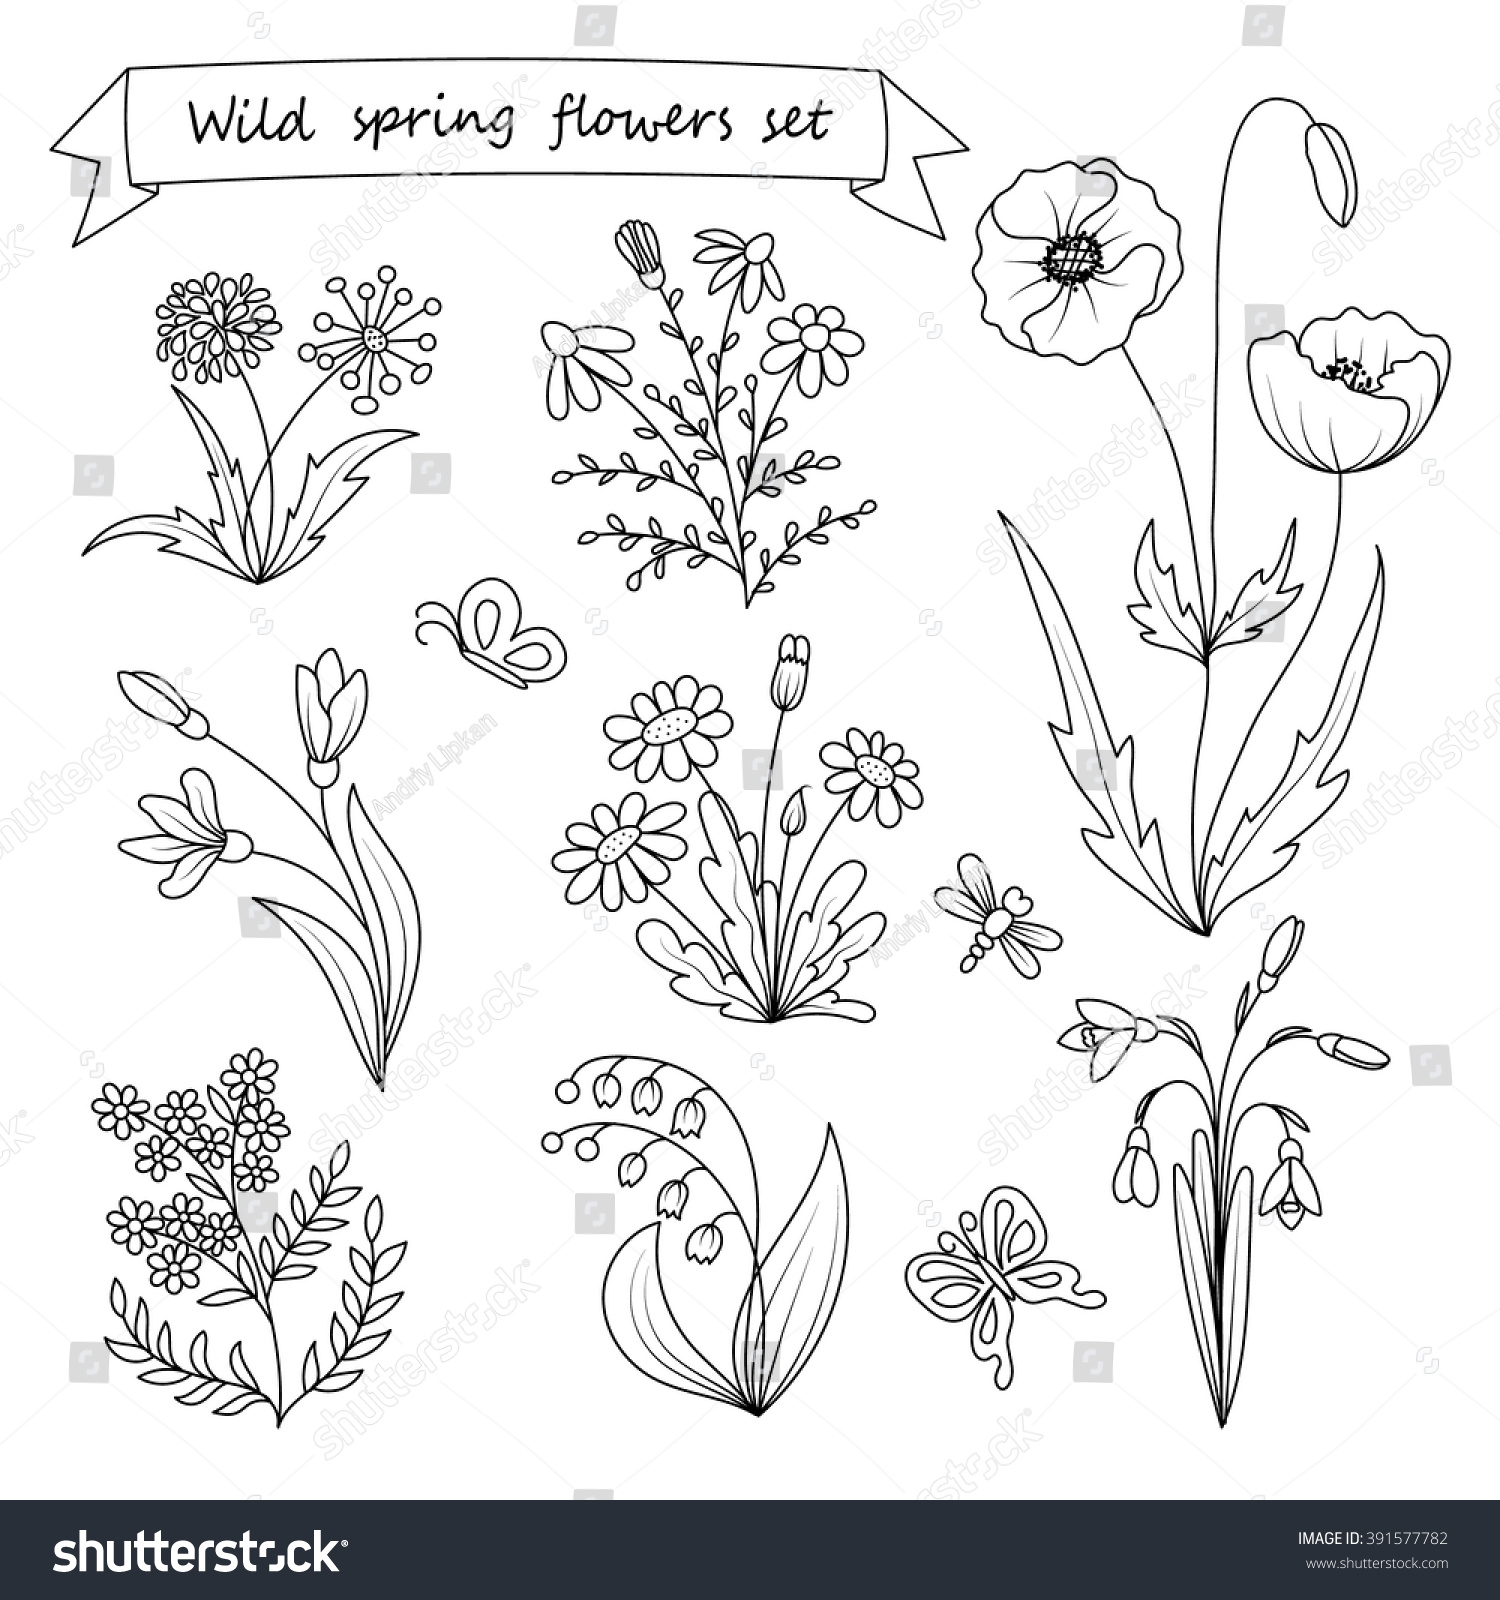 Set Of Hand Drawn Wild Spring Flowers Coloring Book Page Vector Illustration Botany